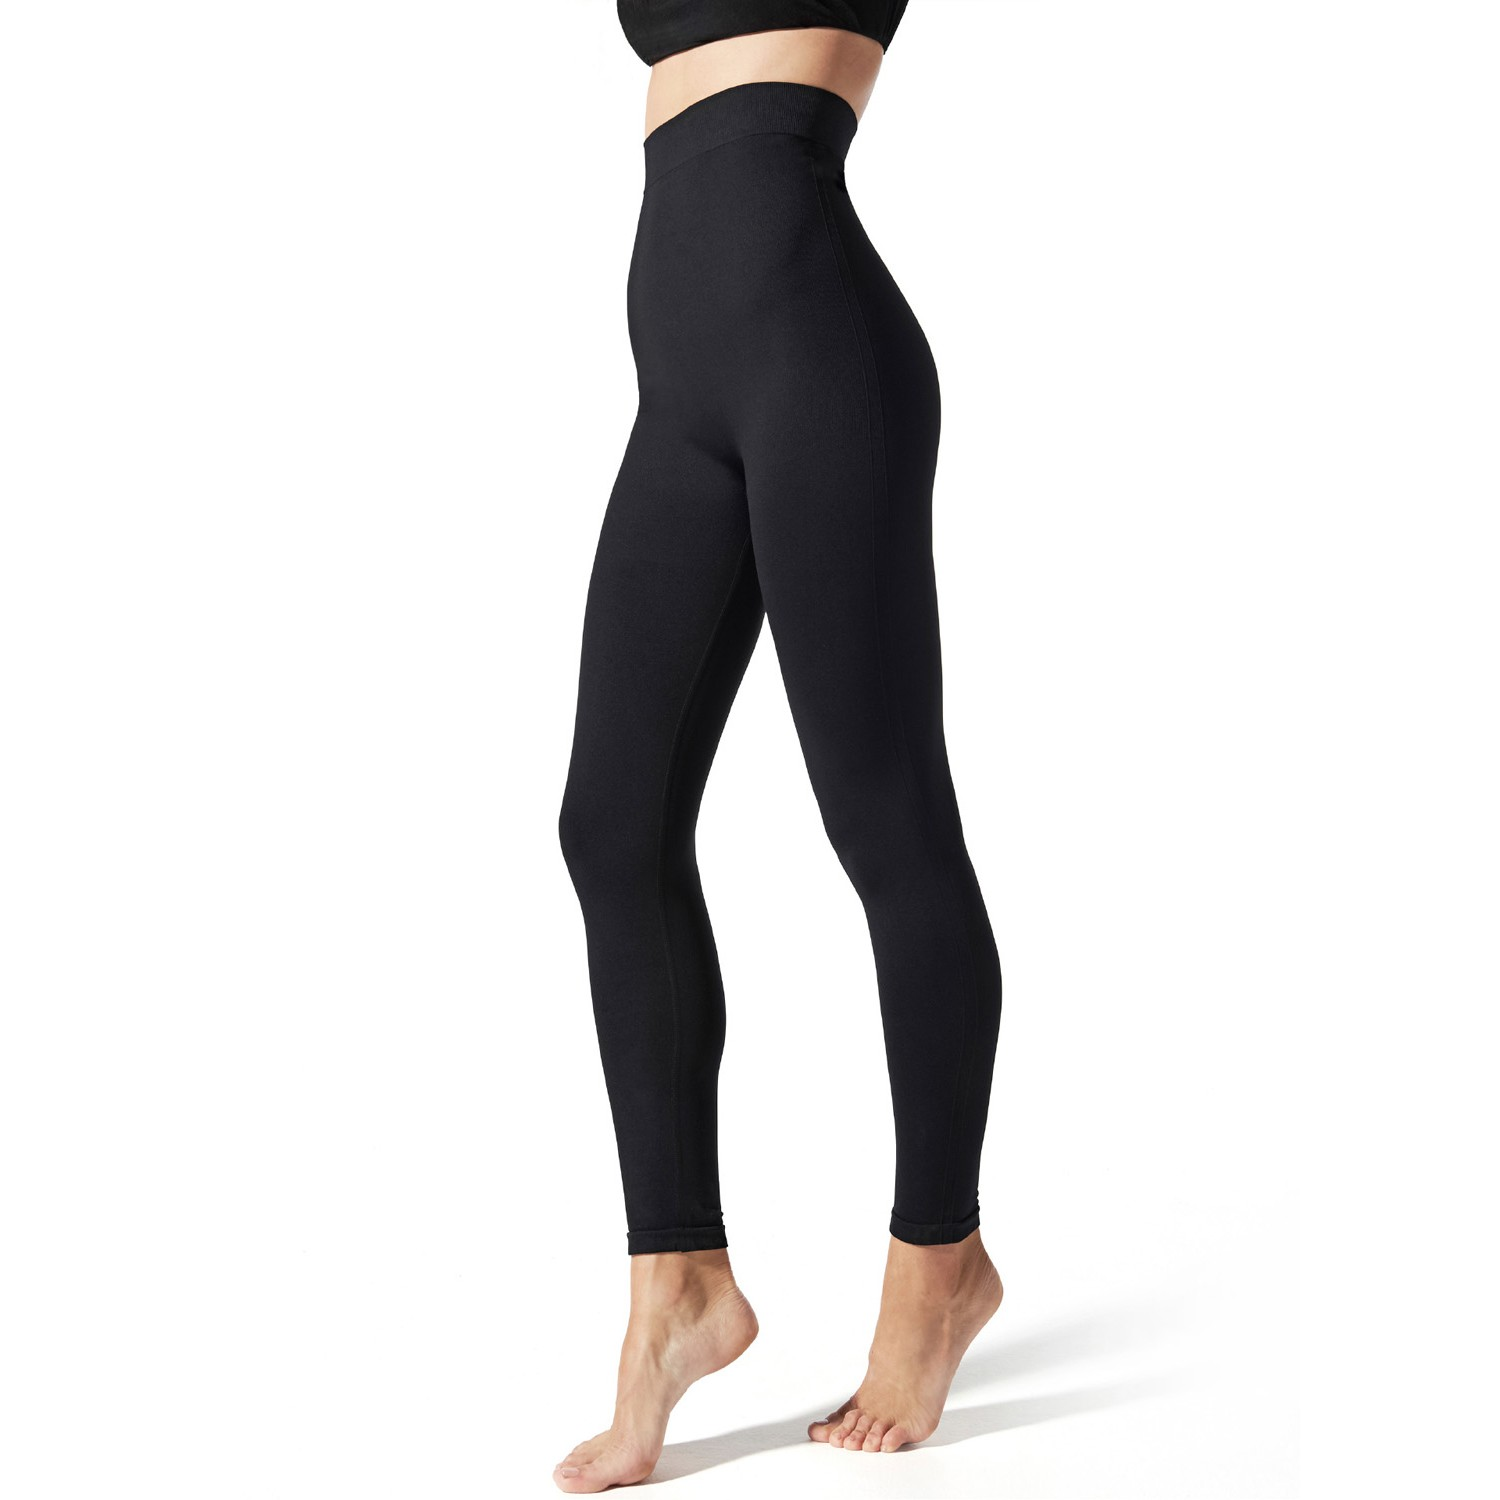 BLANQI EVERYDAY™ Highwaist Postpartum + Nursing Support Leggings